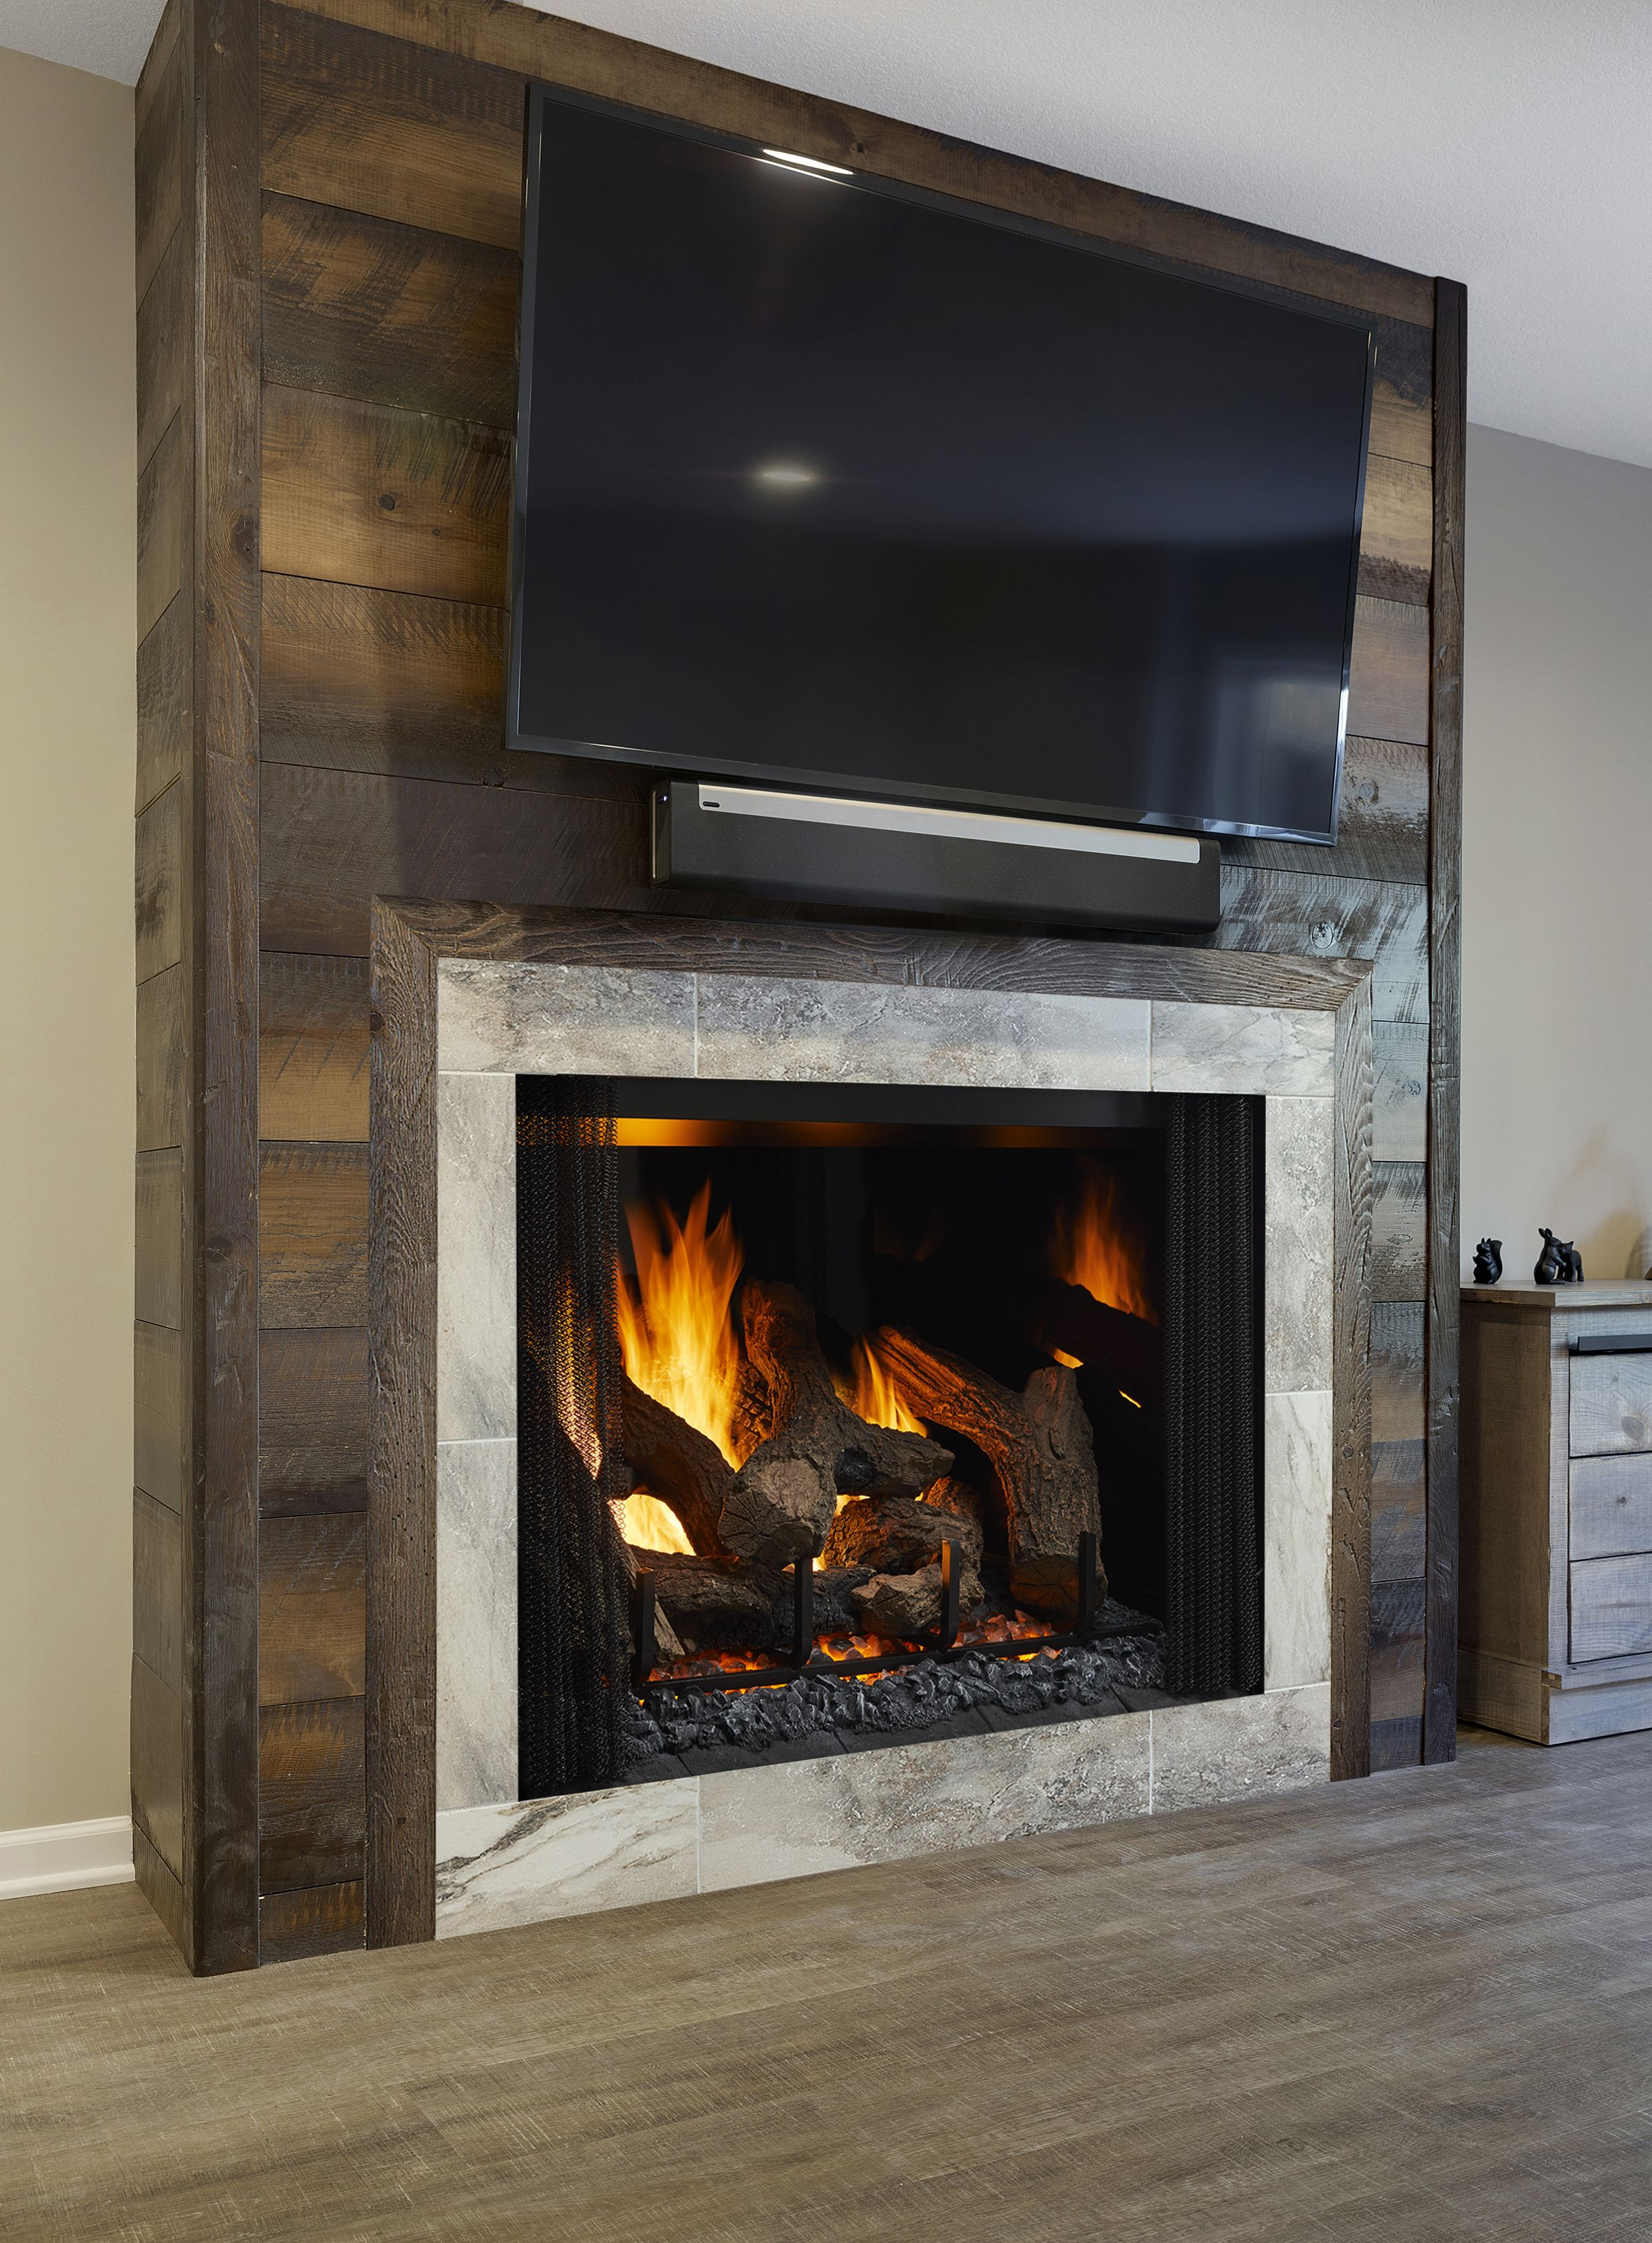 Make Heat Glo Model Phoenix Type Gas Fireplace With Images Family Room Design Relaxing Living Room Fireplace Design